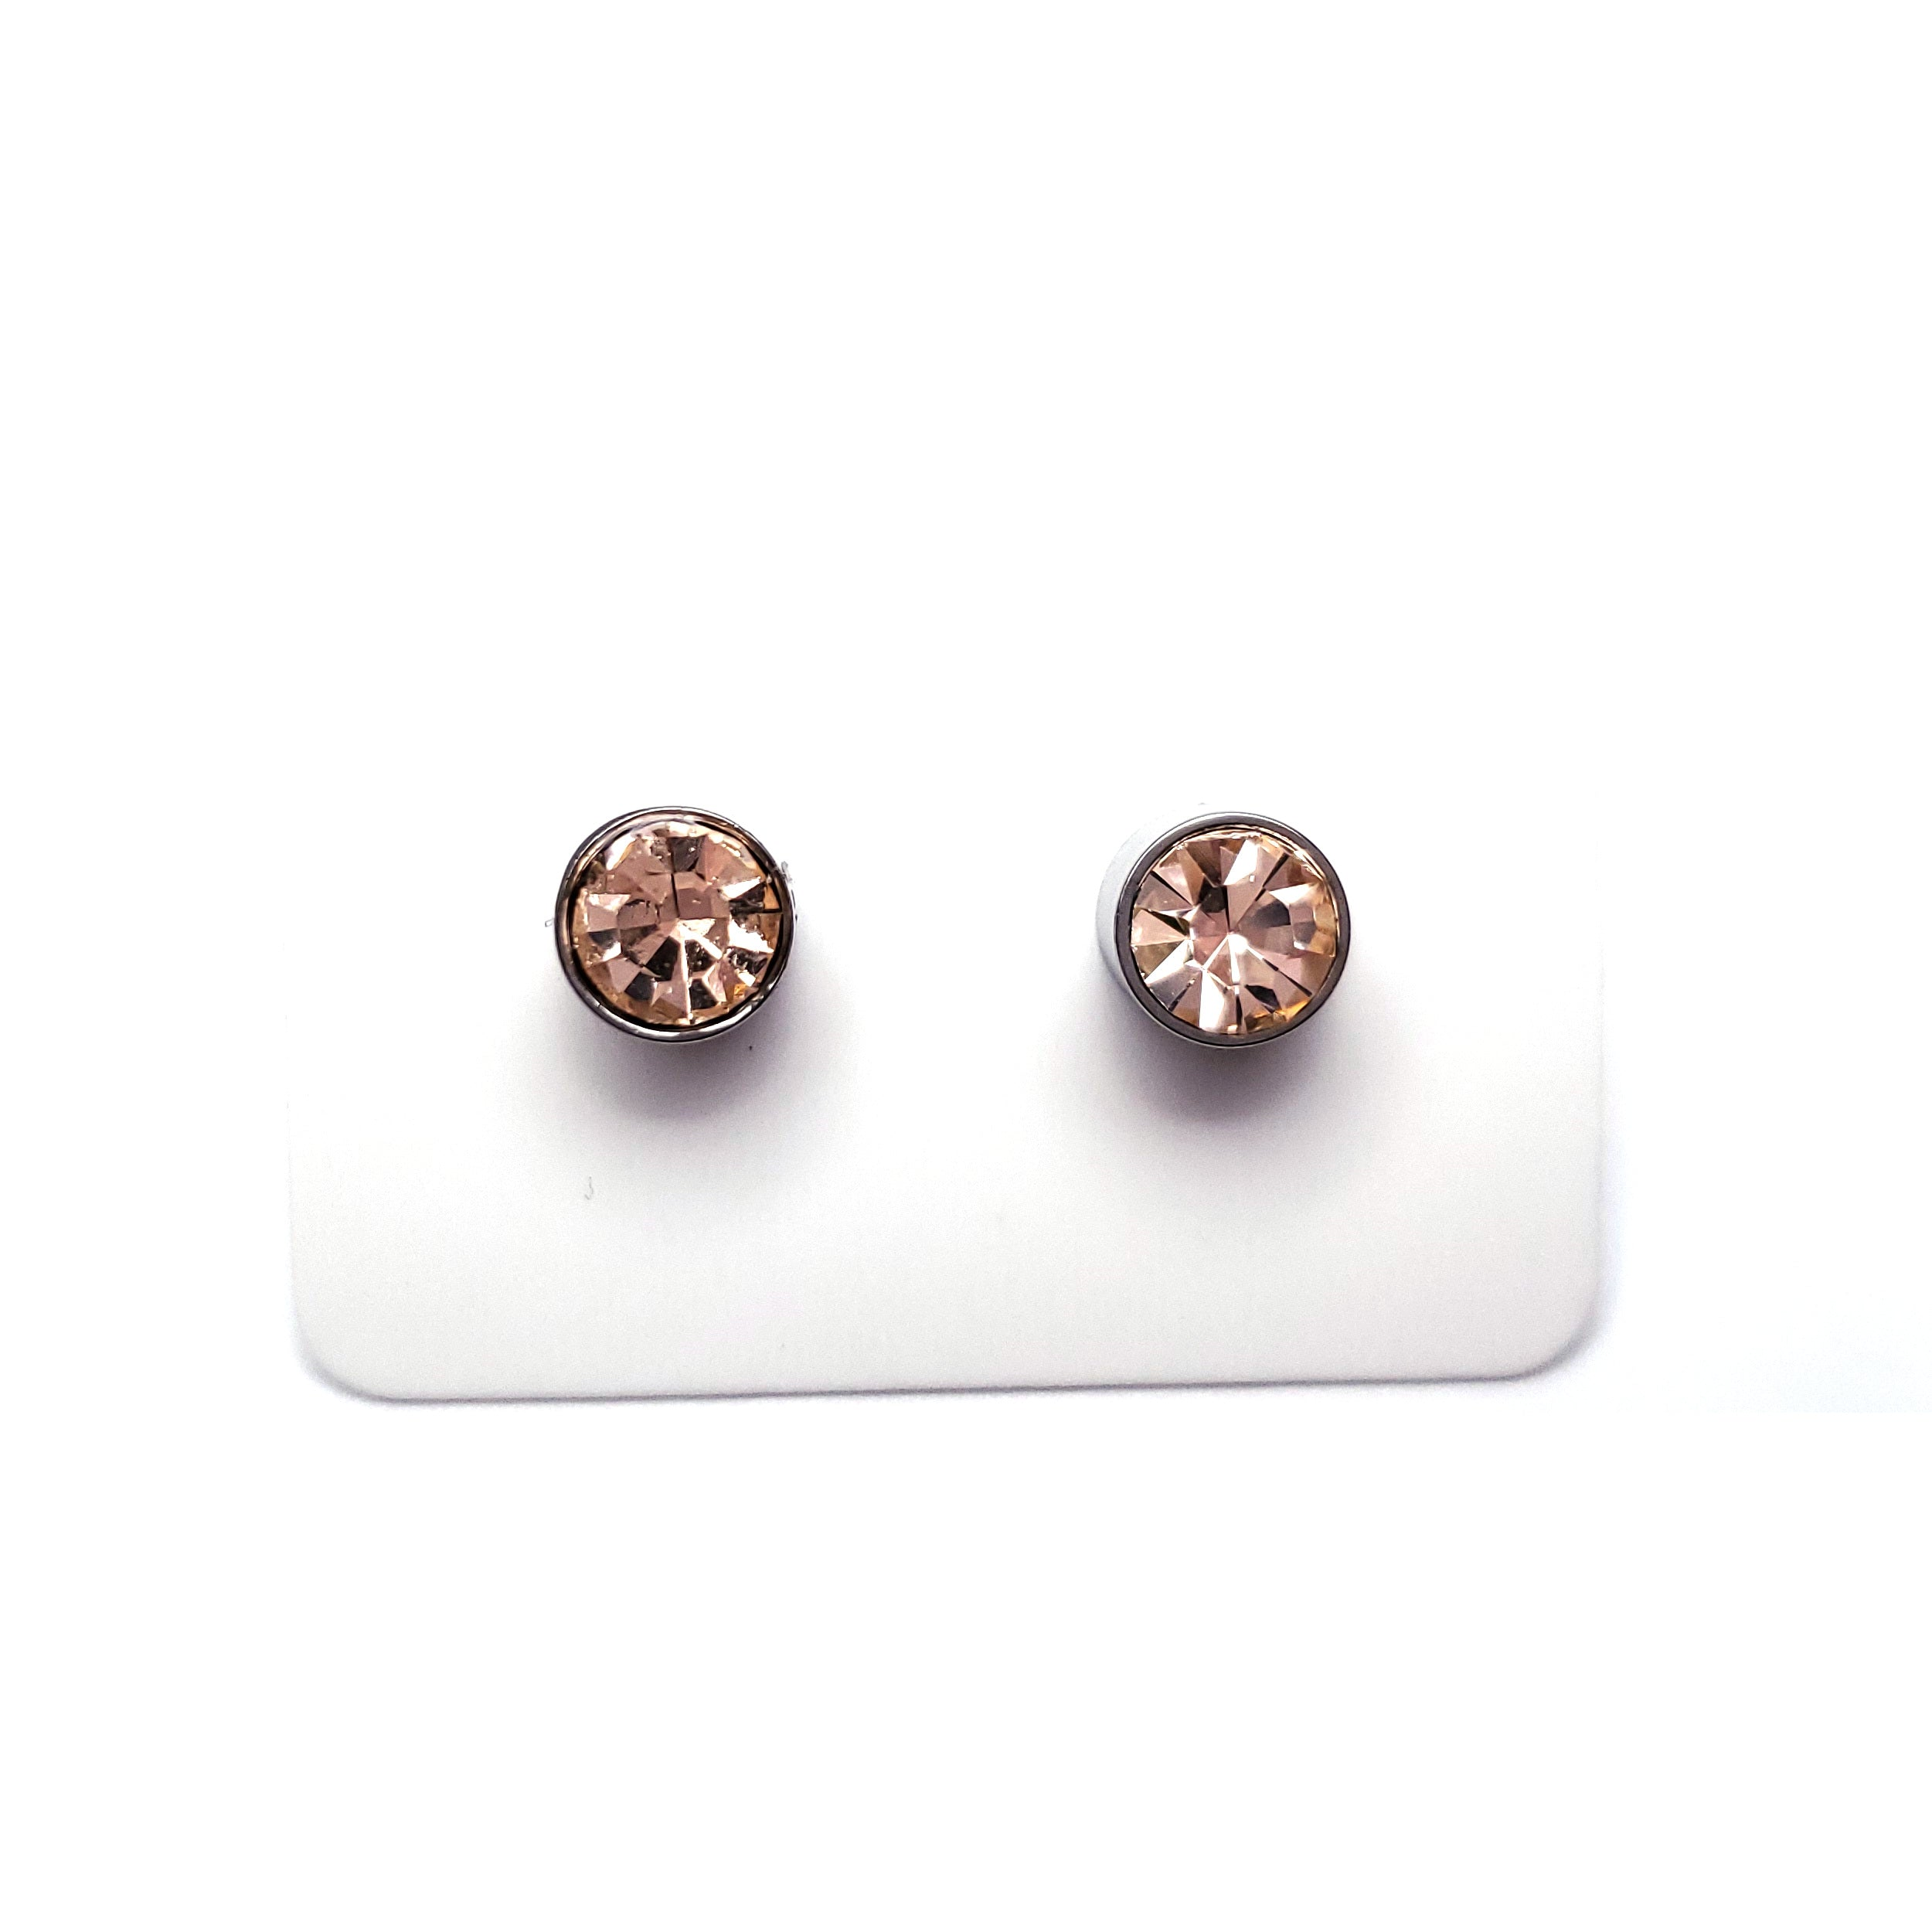 Champagne Magnetic Earrings (6mm)